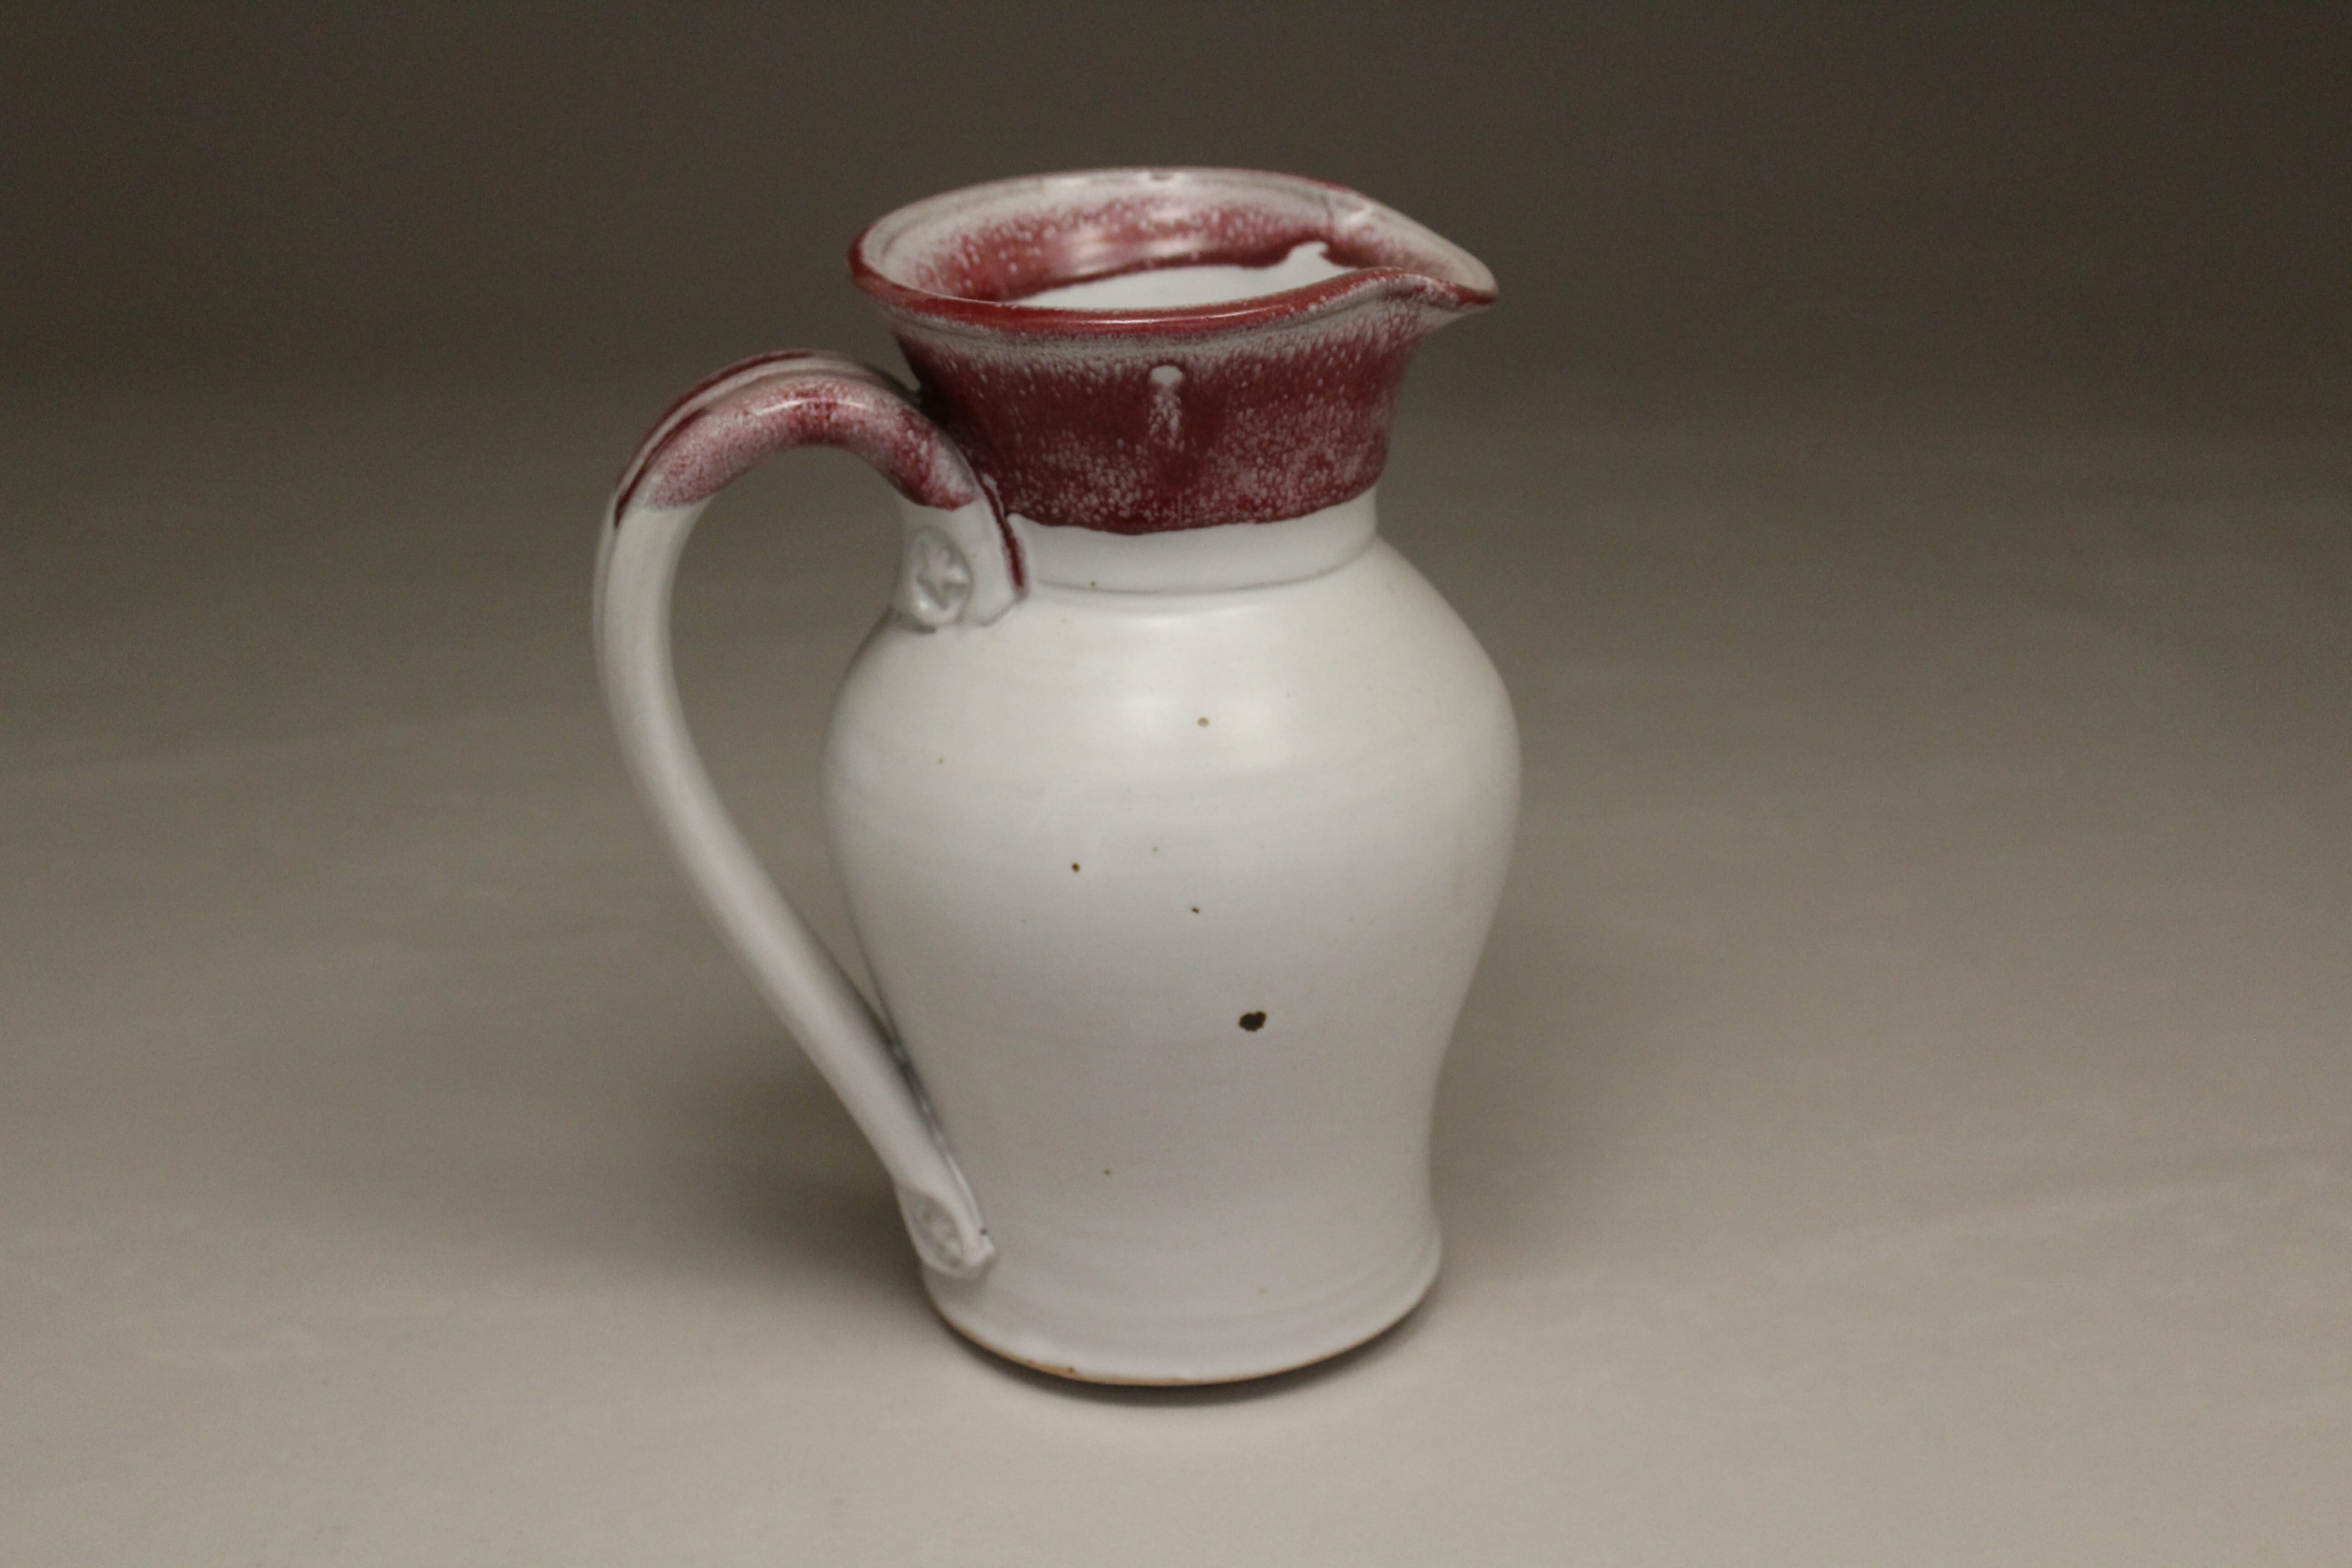 Small Pitcher Smooth Design in White and Red Glaze